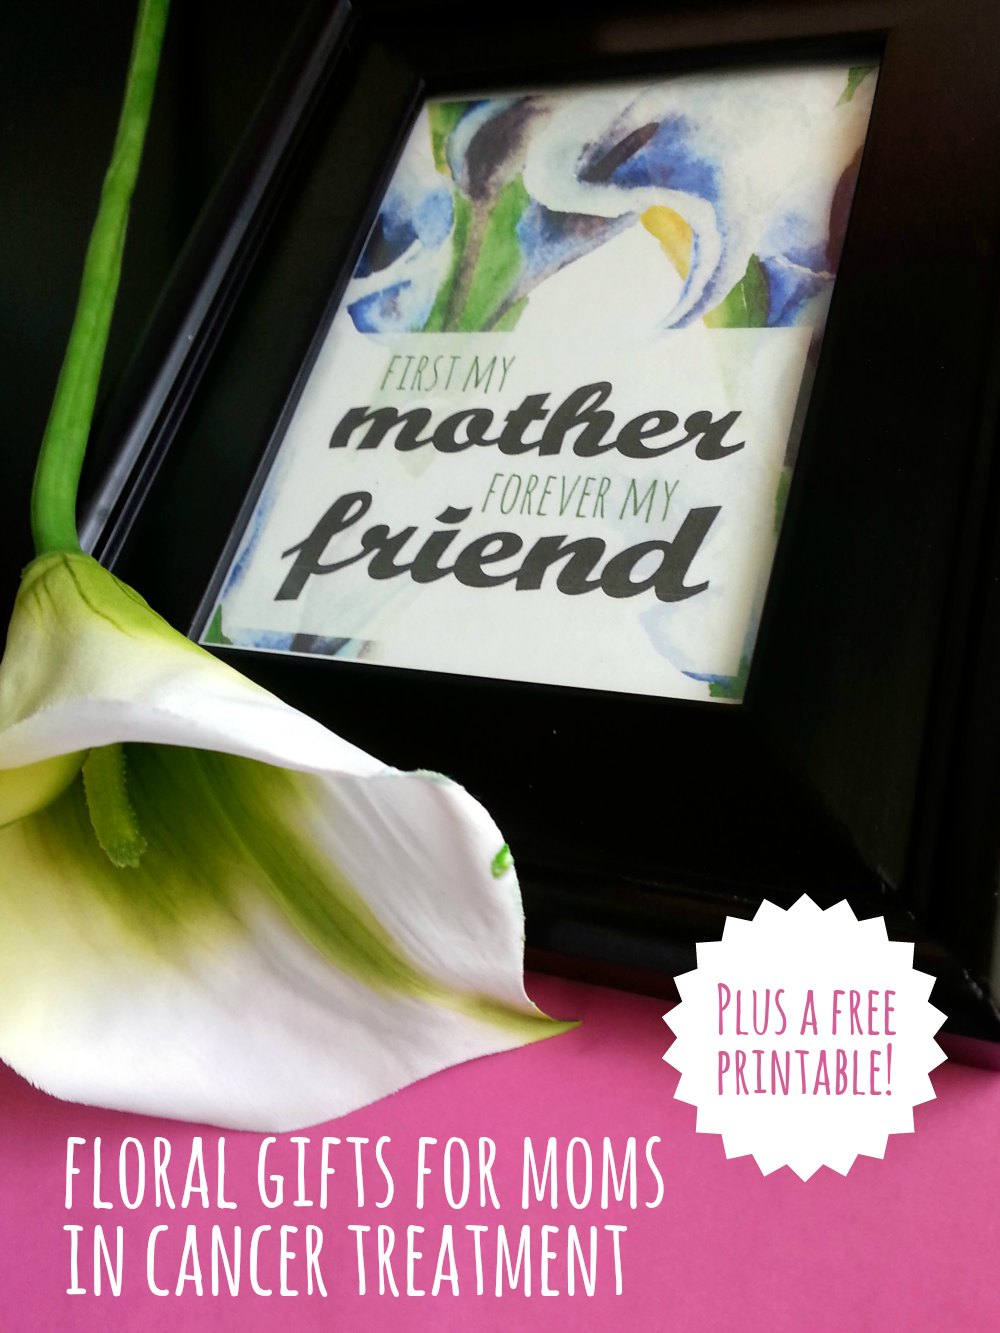 Mother's Day Flower Gifts for Moms in Cancer Treatment + A Free Printable! #BestMomsDayEver @Walmart #ad